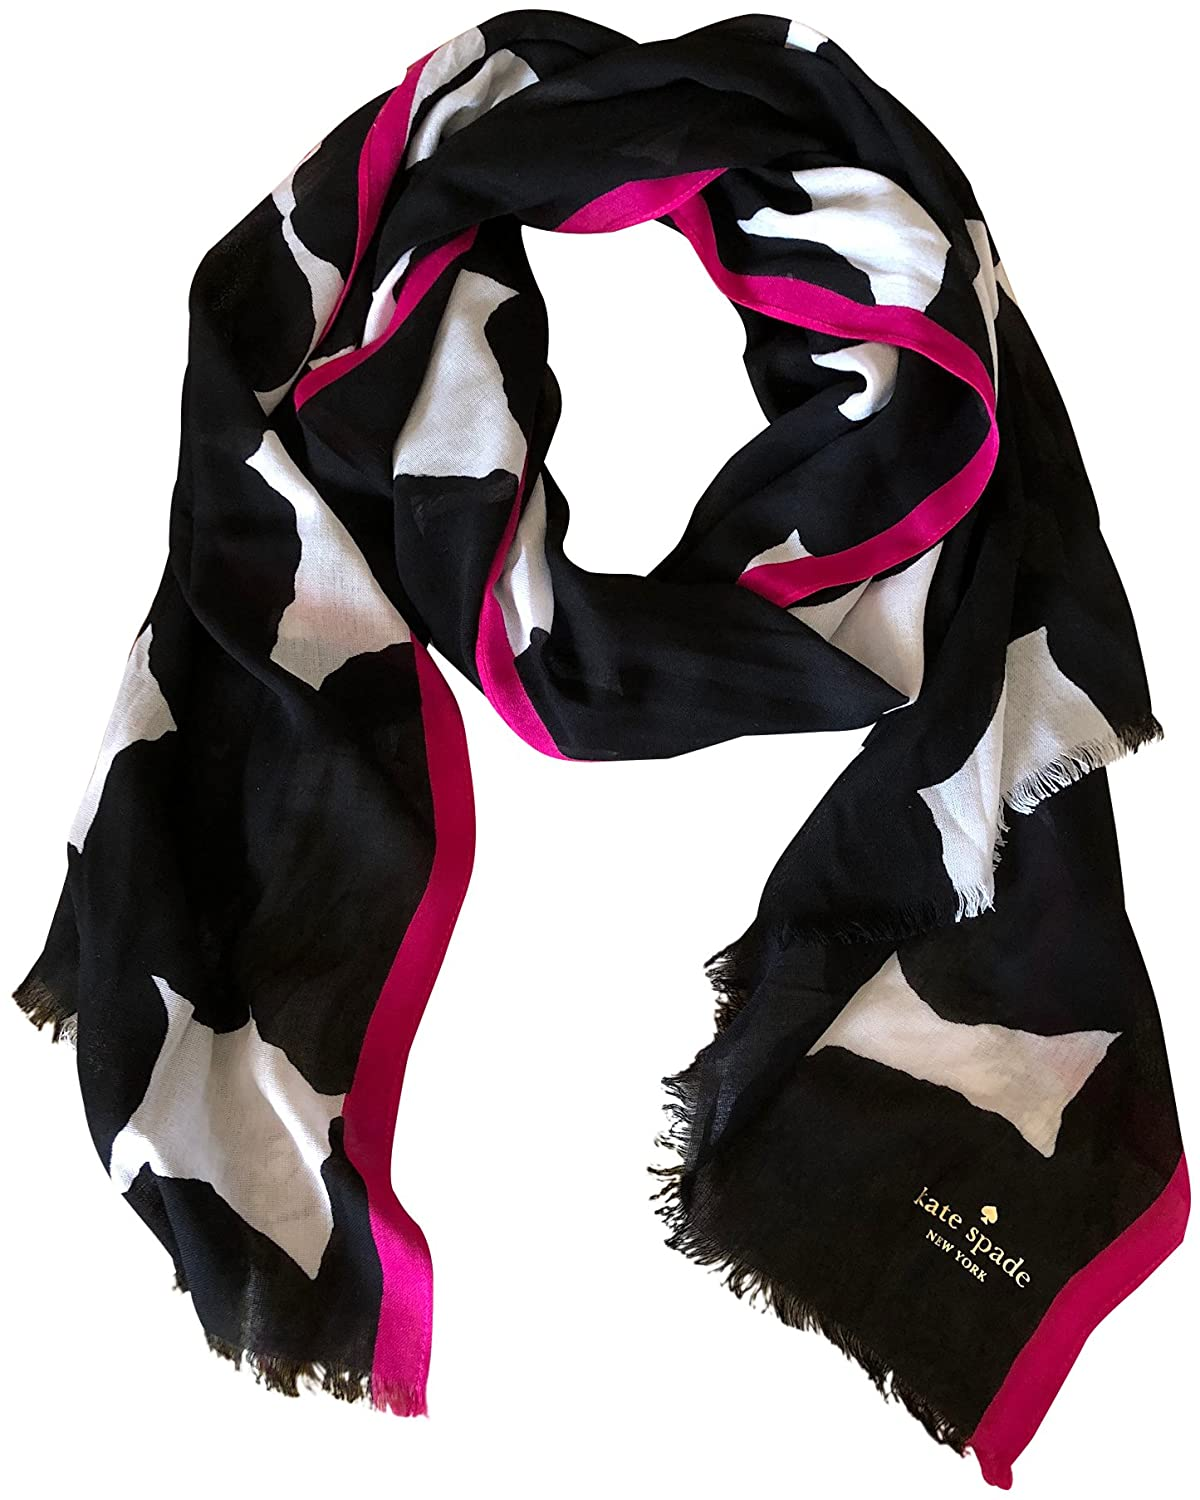 Kate Spade Woman's Blot Dot Oblong Scarf Black White